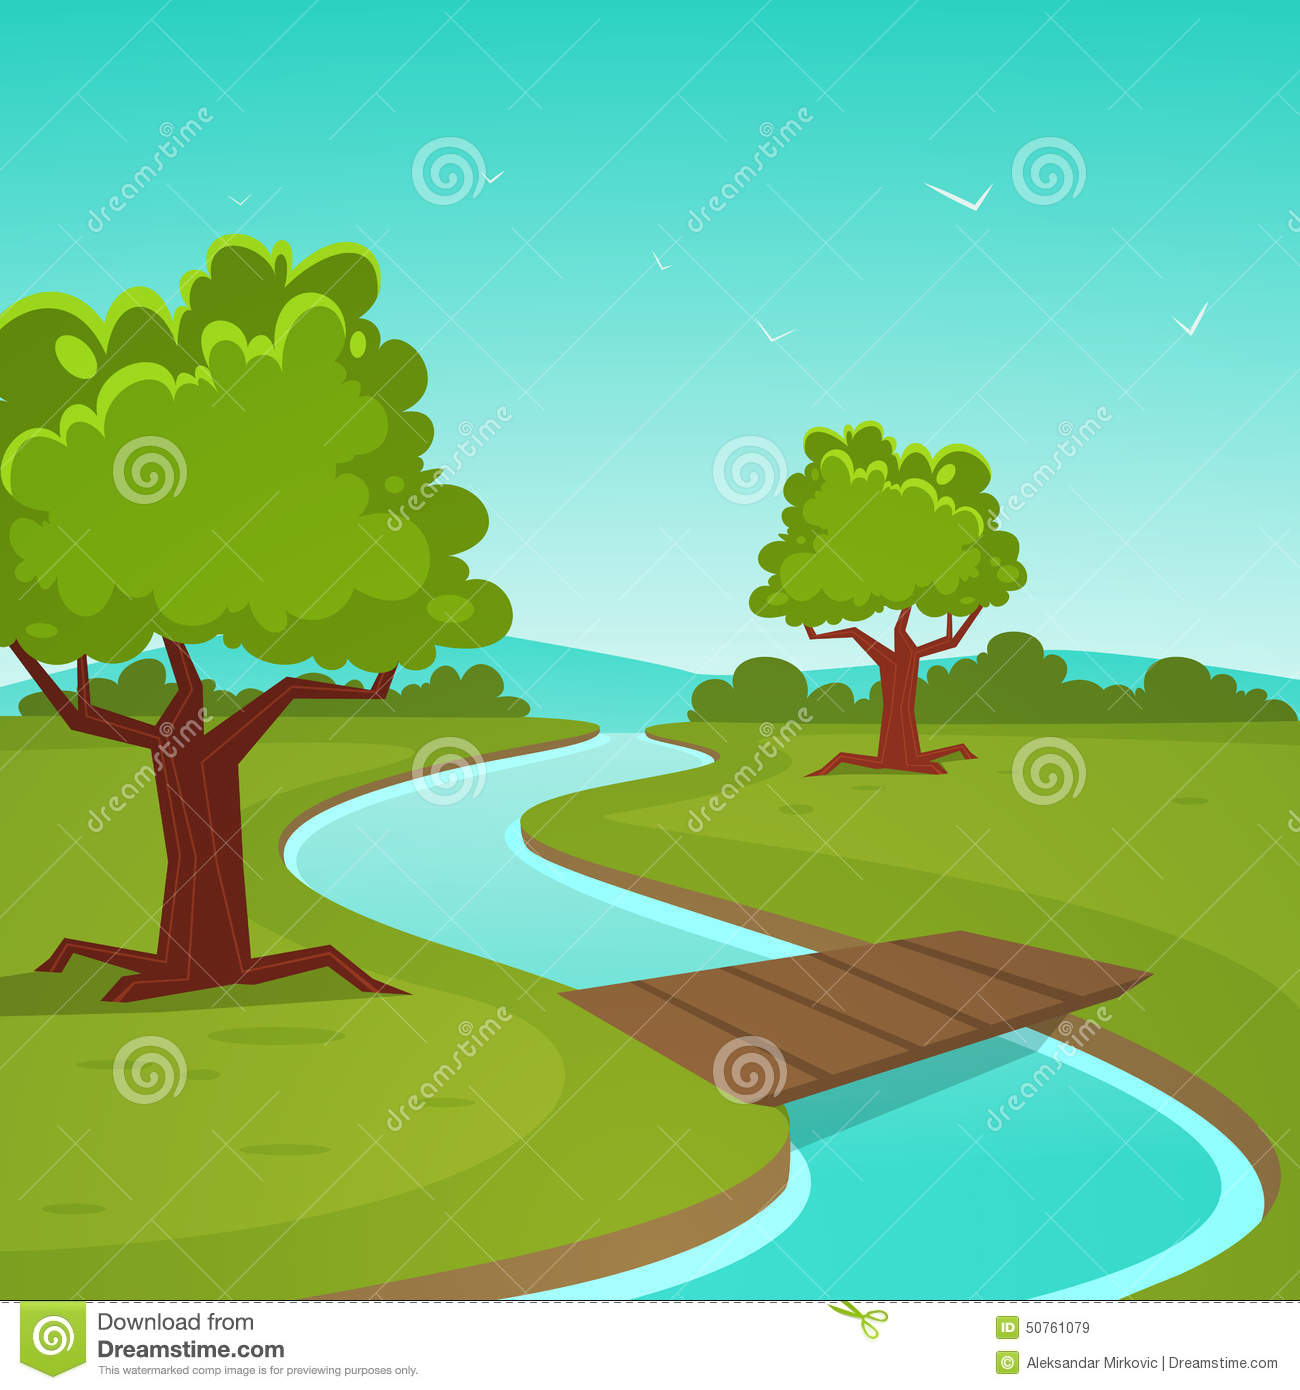 How To Spring Clean Cartoon Summer Landscape Stock Vector Image 50761079